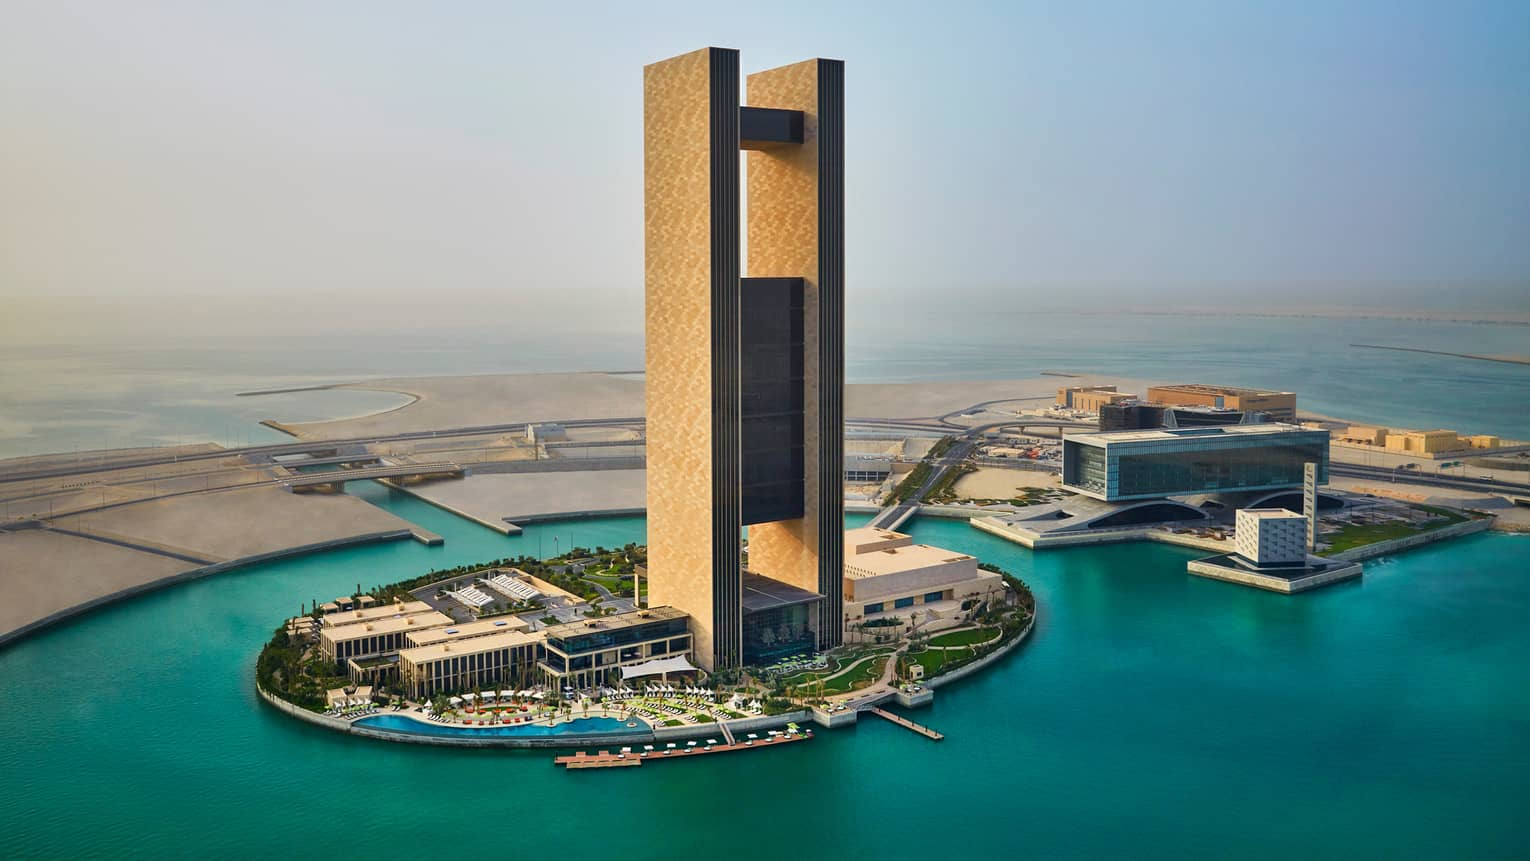 bahrain bay case study 4 q a Case analysis of bahrain bay brief contents part 1 case background part 2 marketing mix part 3 base on swot part 1 case background bahrain bay development is a joint venture between arcapita bank and a bahrain-based investment group.